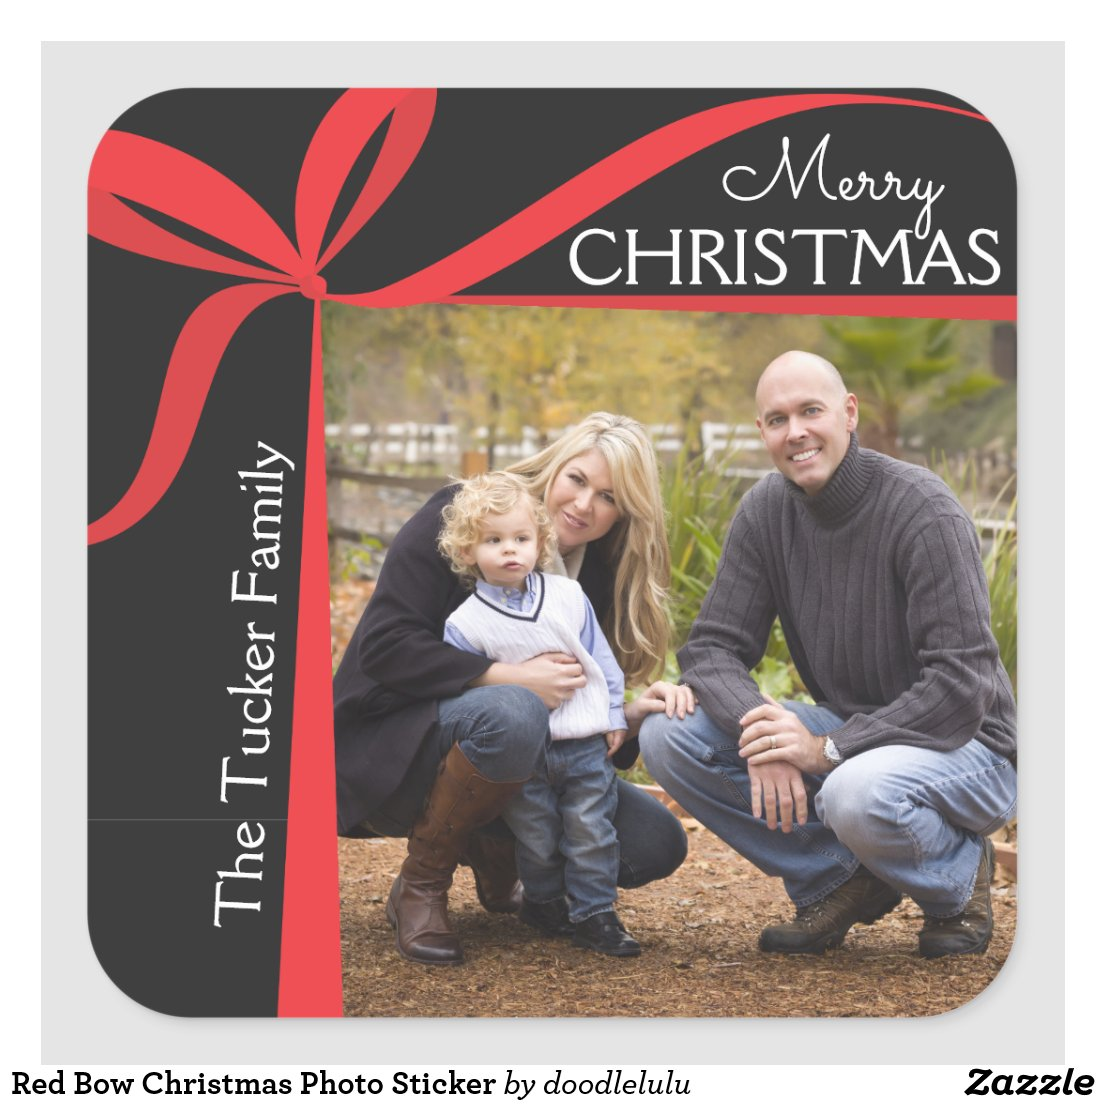 Red Bow Christmas Photo Sticker